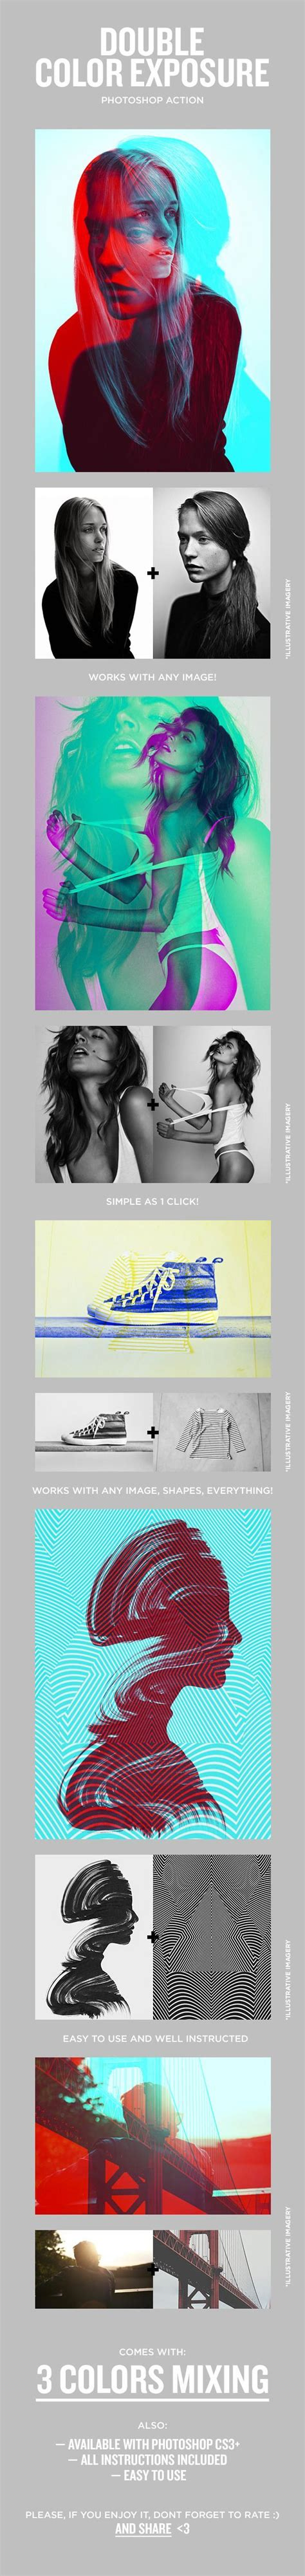 photoshop action dual watermark pattern generator by 1587 best images about graphic design layout inspiration